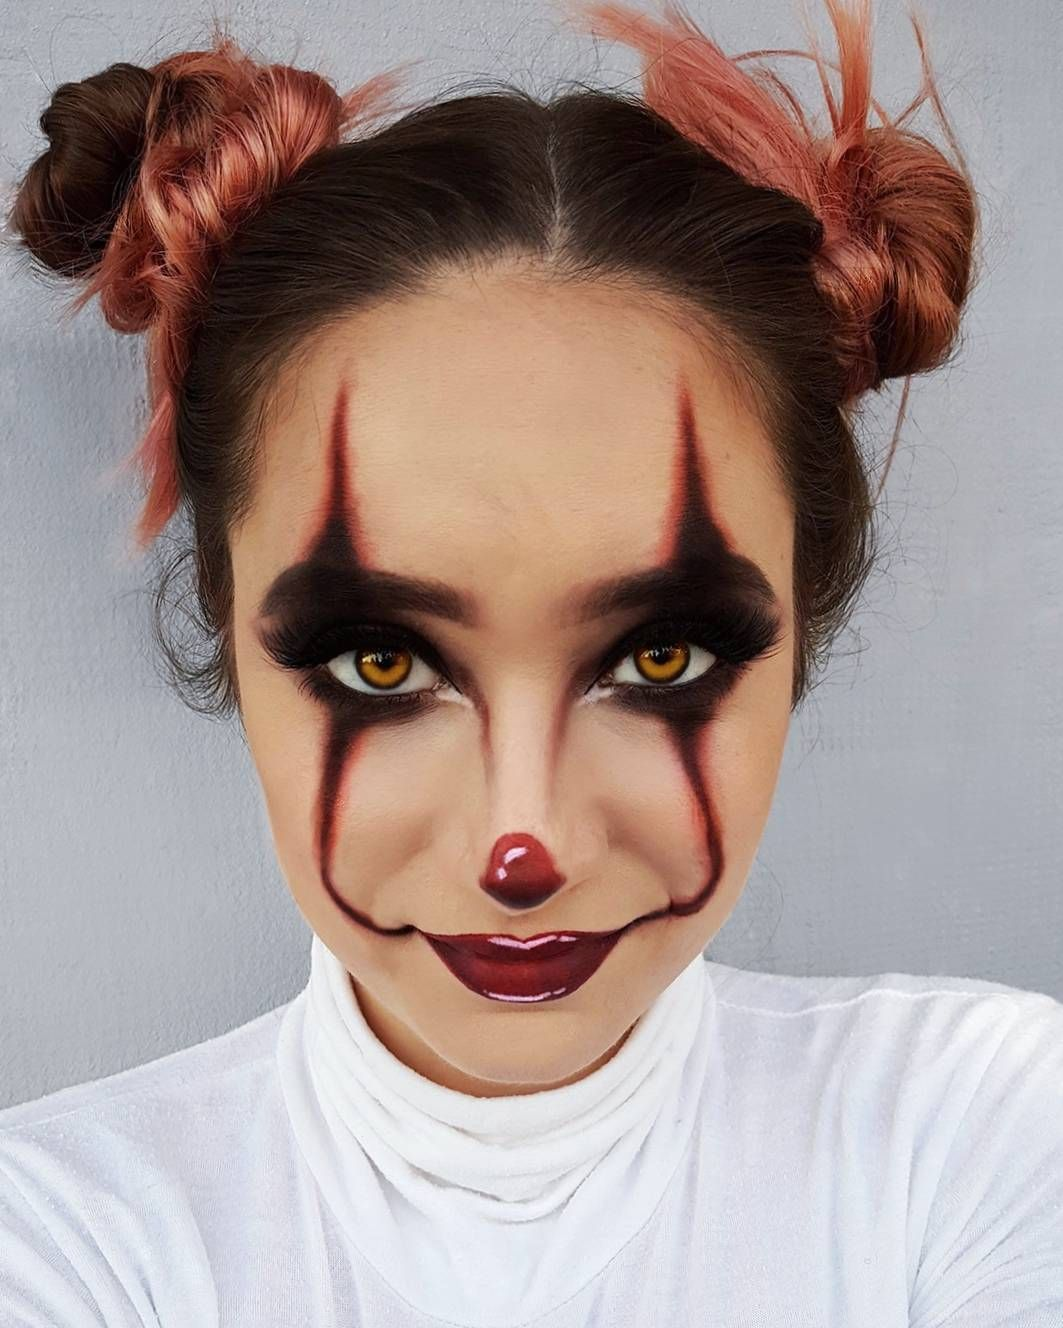 Are you looking for the best Halloween makeup ideas? Check out Beauty UK Halloween board for some inspirations #beautyukhalloween #halloweenmakeup #halloween #halloweenart #halloween2017 #pennywise #pennywisetheclown #pennywisethedancingclown @tenaco